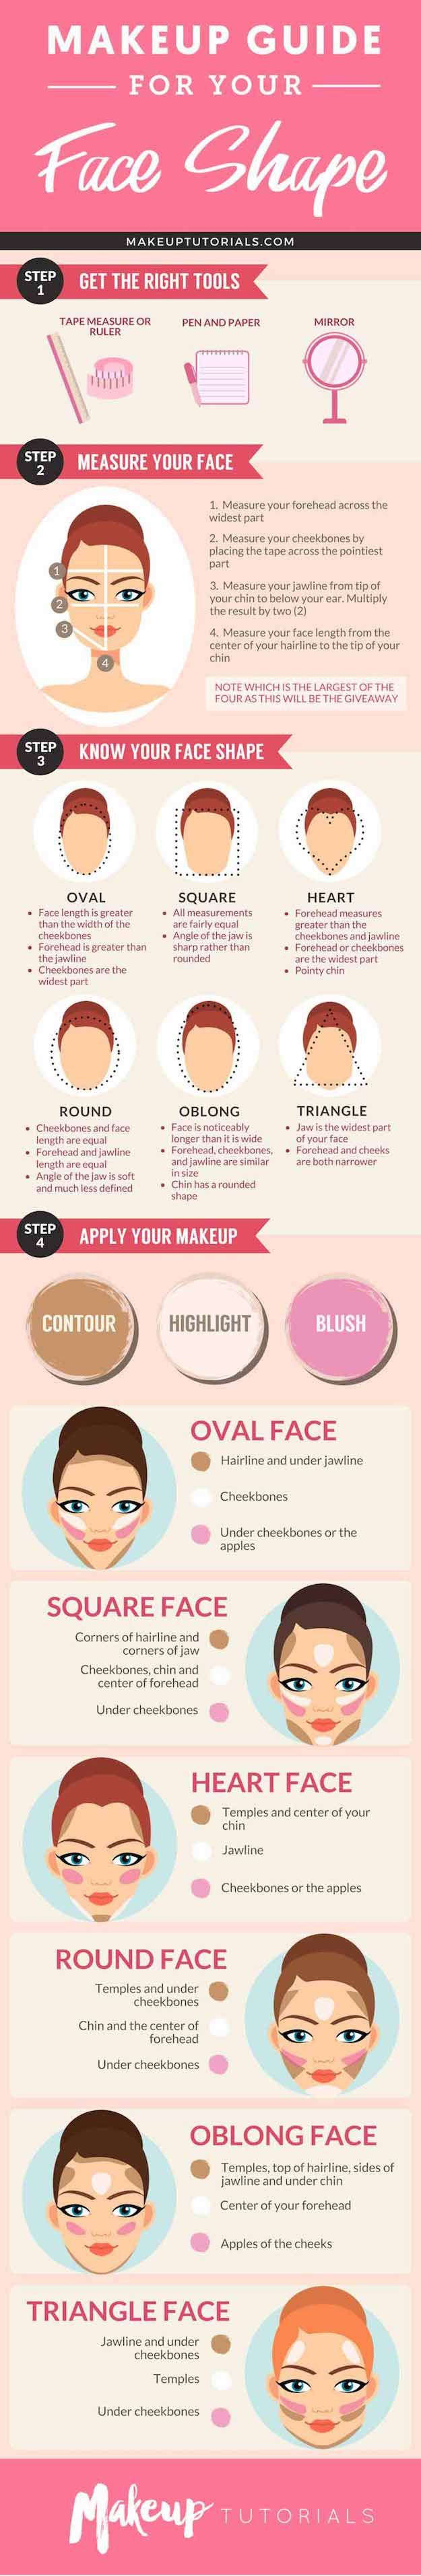 How To Determine Face Shape | Best Makeup Tutorials And Beauty Tips From The Web...